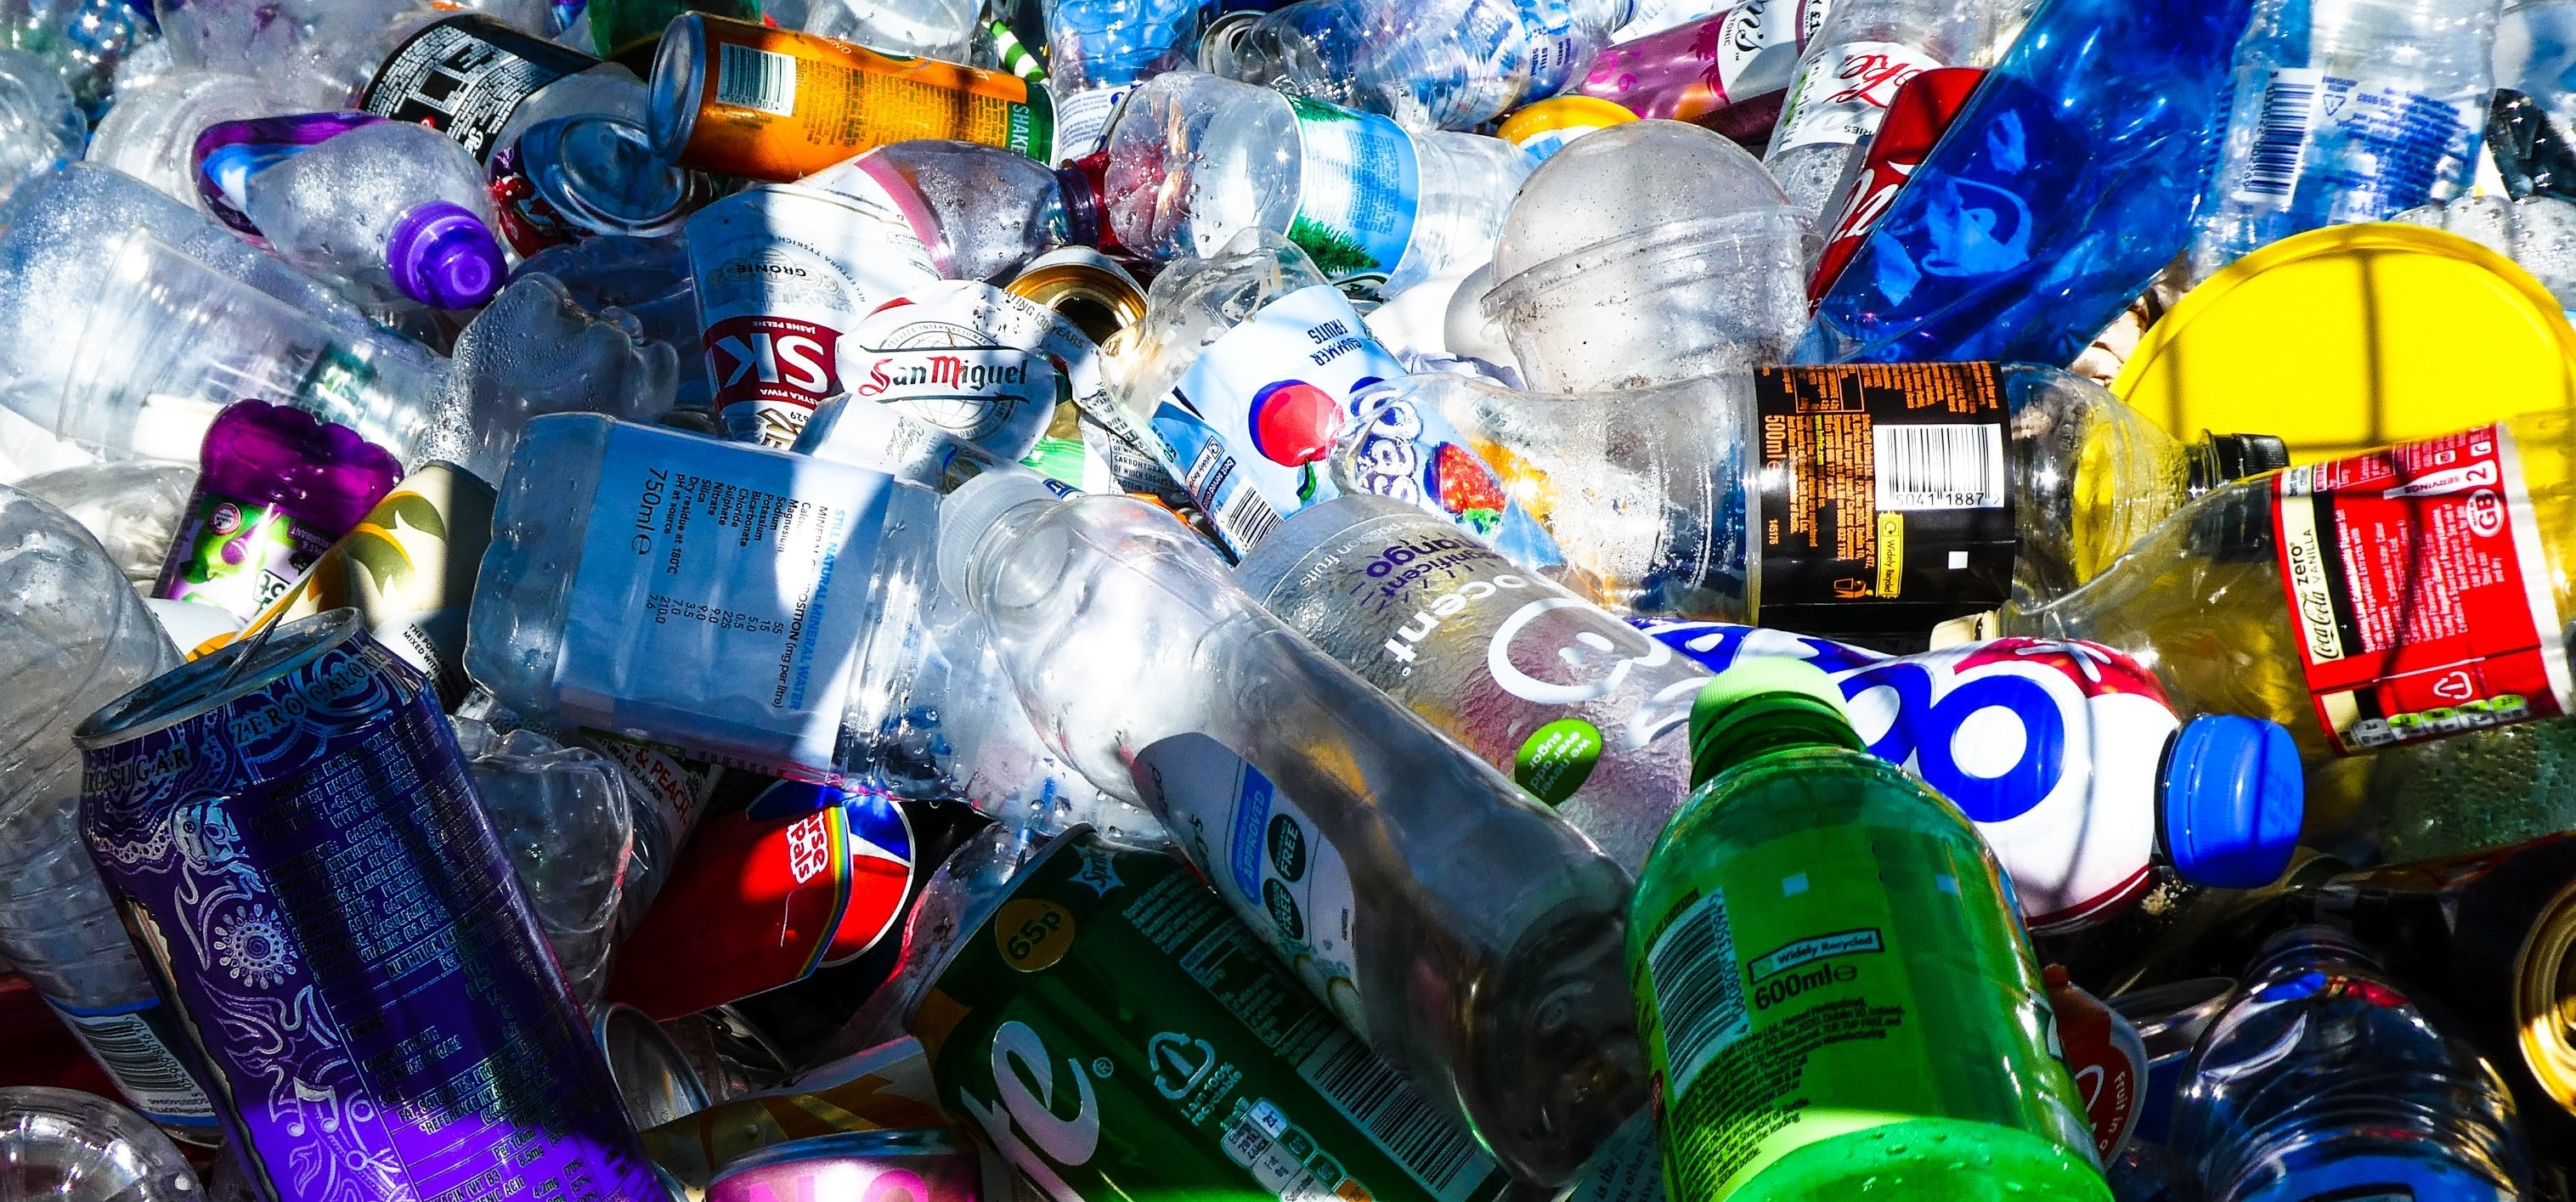 A pile of generally recyclable plastic bottles and cans.